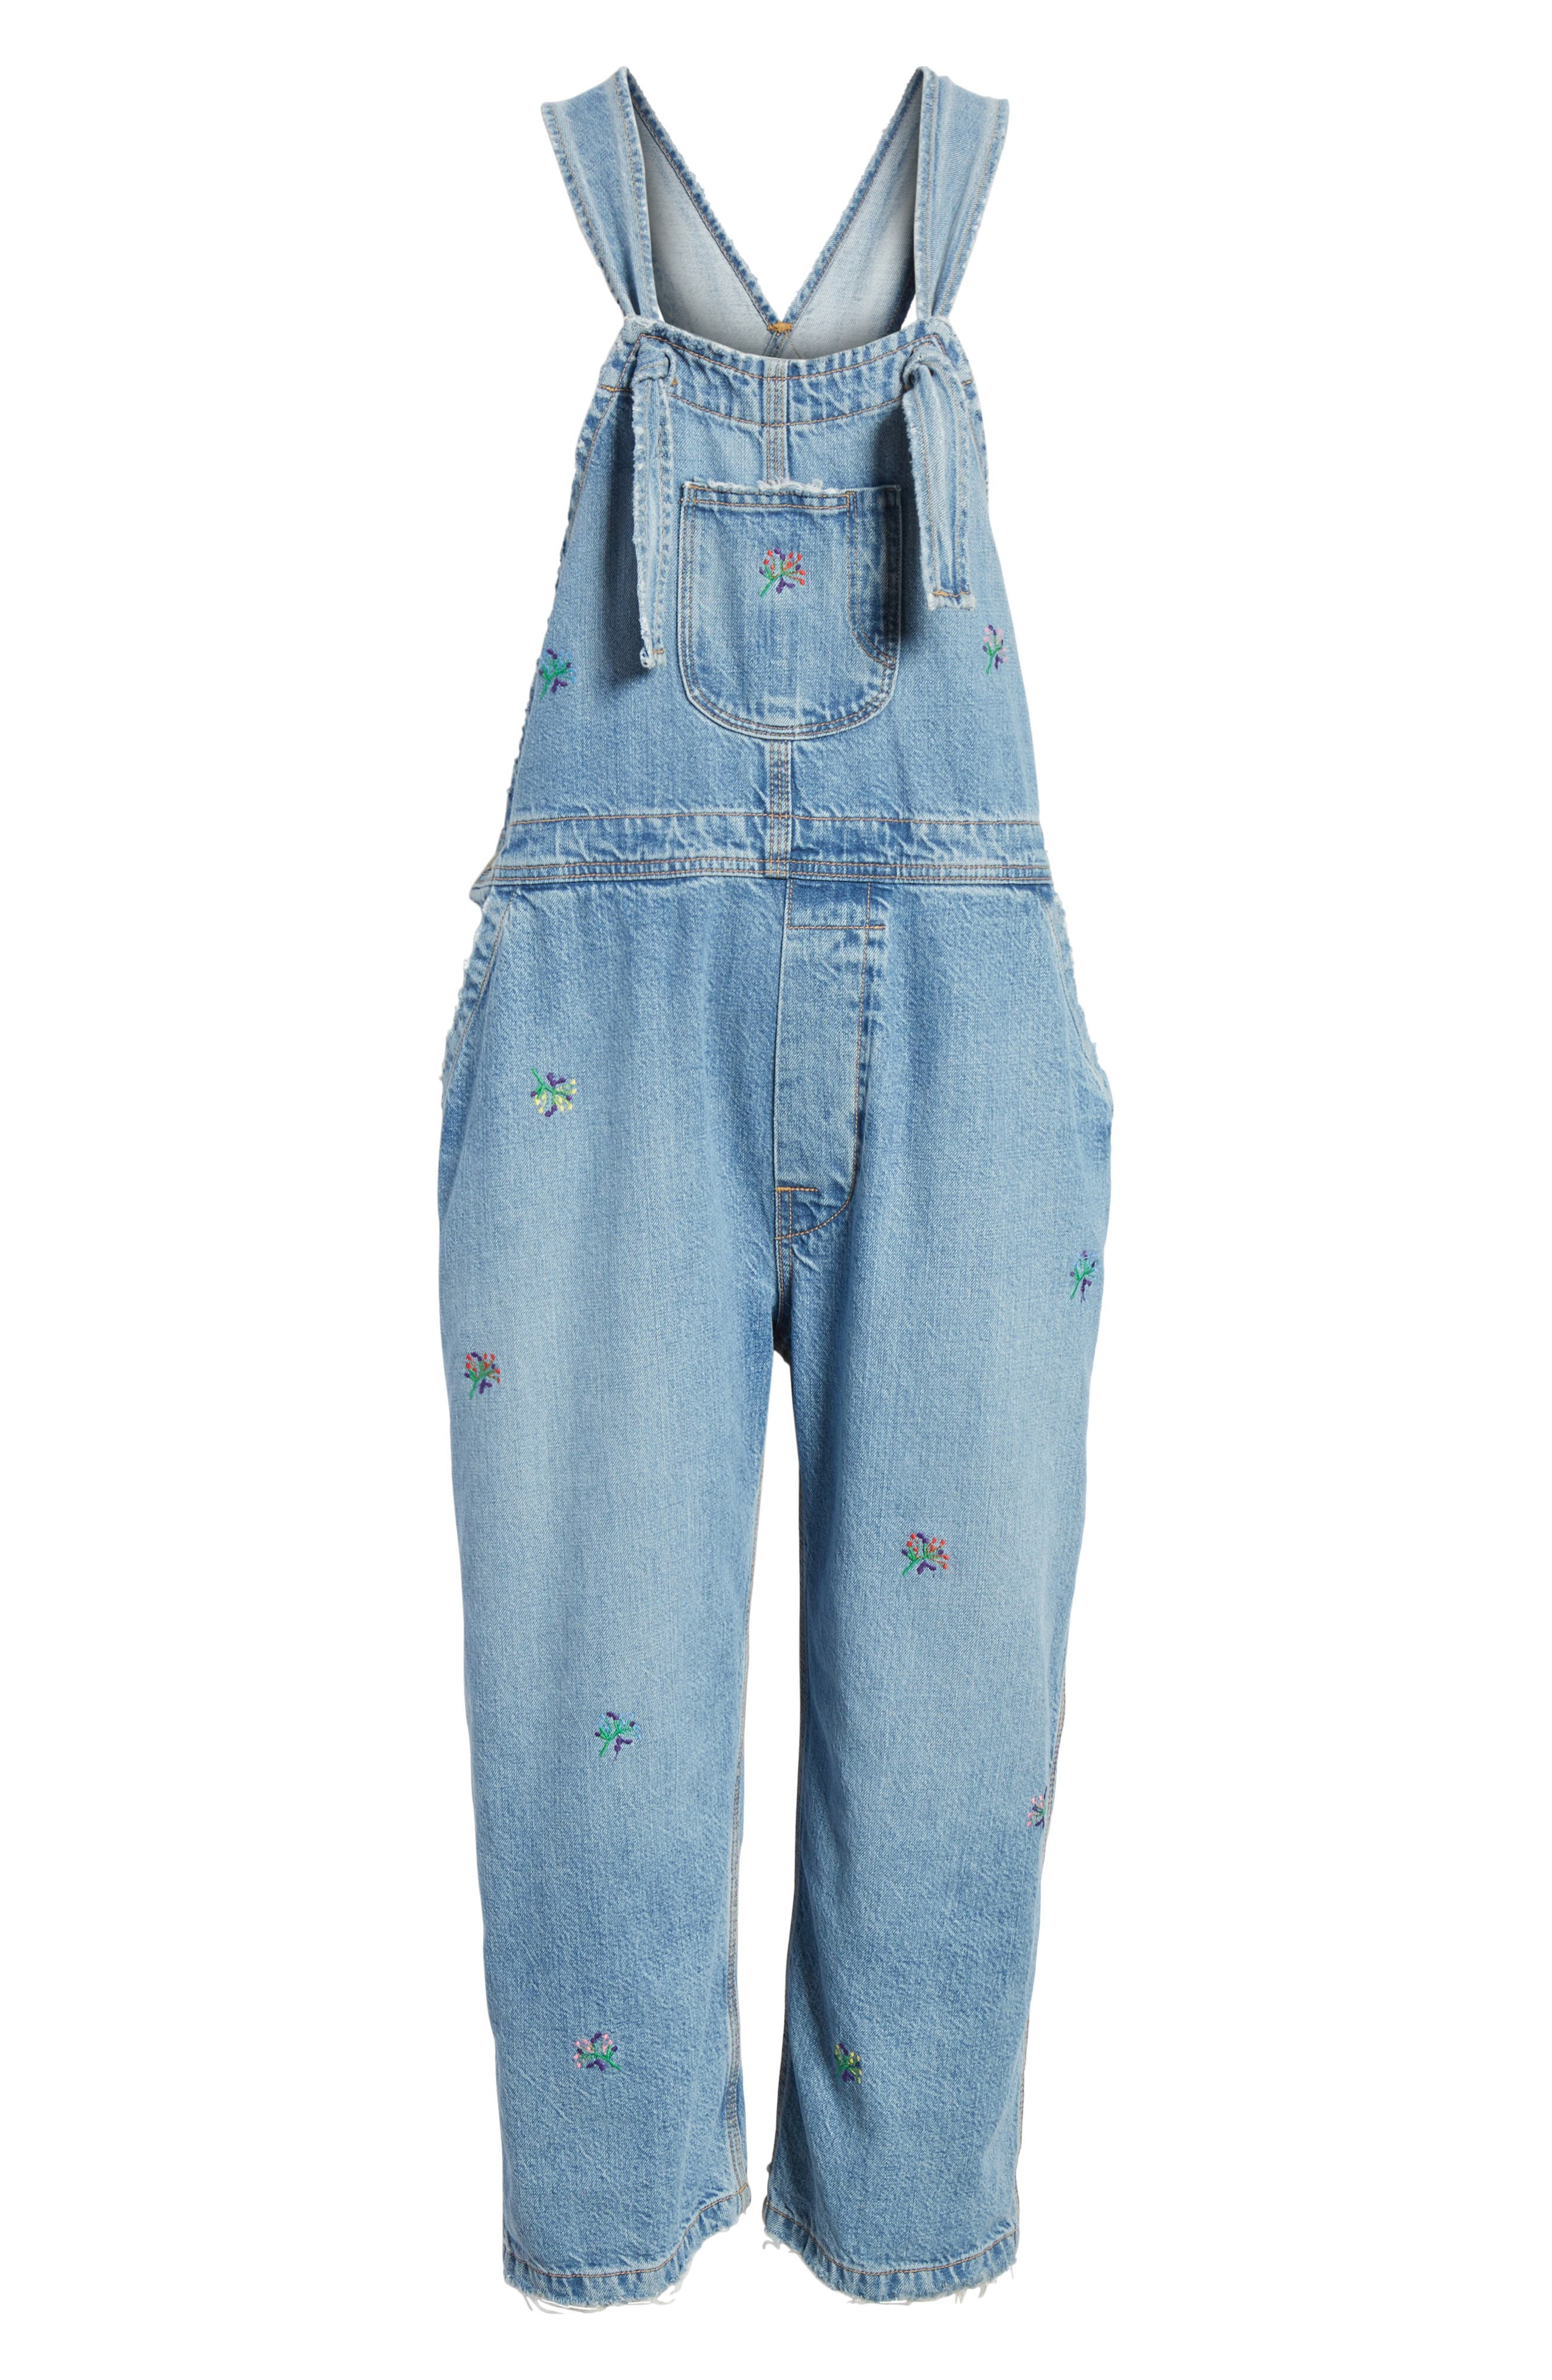 The Shop Embroidered Overalls,                             Alternate thumbnail 7, color,                             Canteen Wash W/ Flower Emb